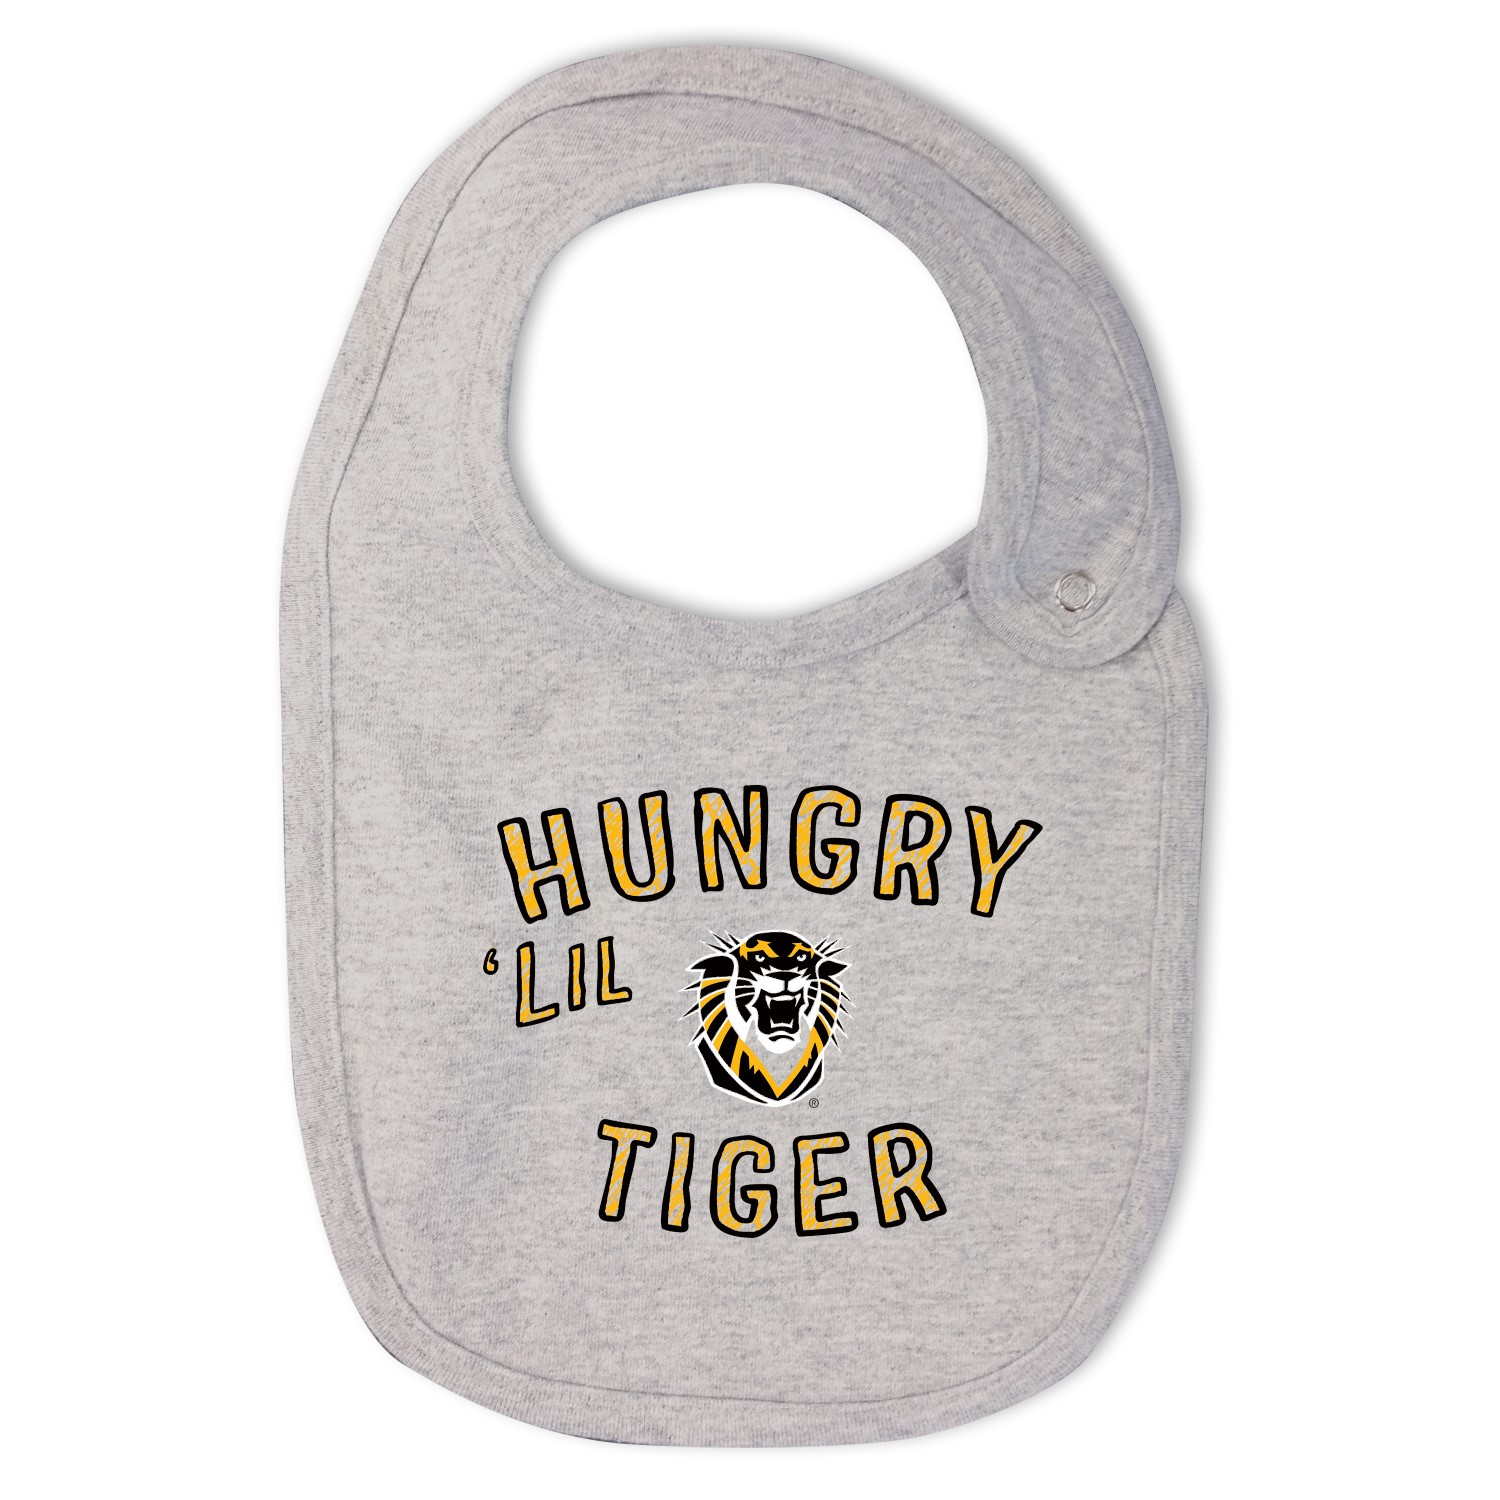 Image for the Hungry 'Lil Tiger Oxford Bib, One Size, College Kids product